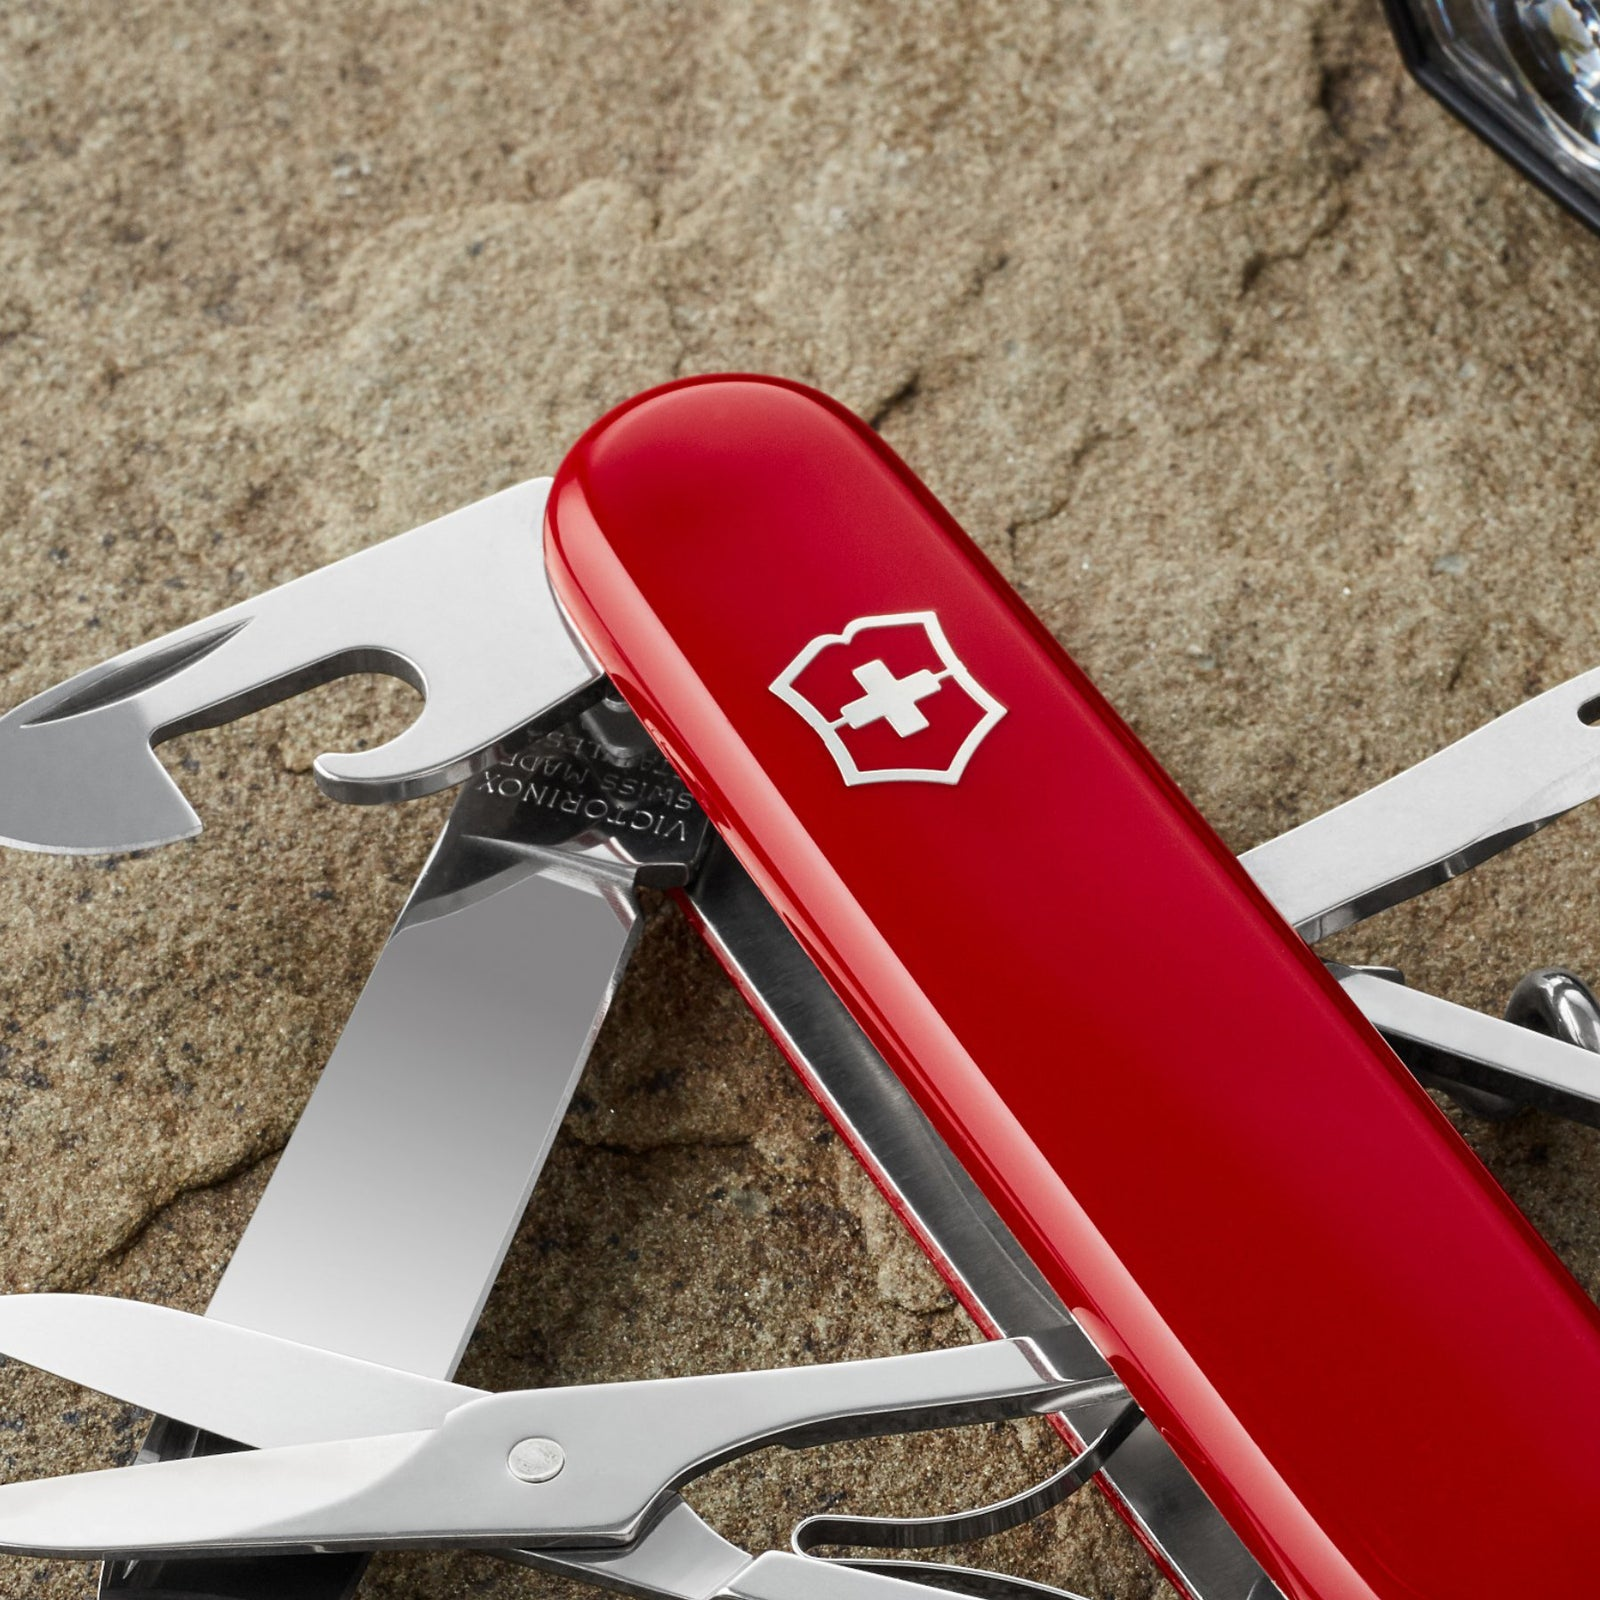 Swiss Army Knives By Victorinox At Swiss Knife Shop